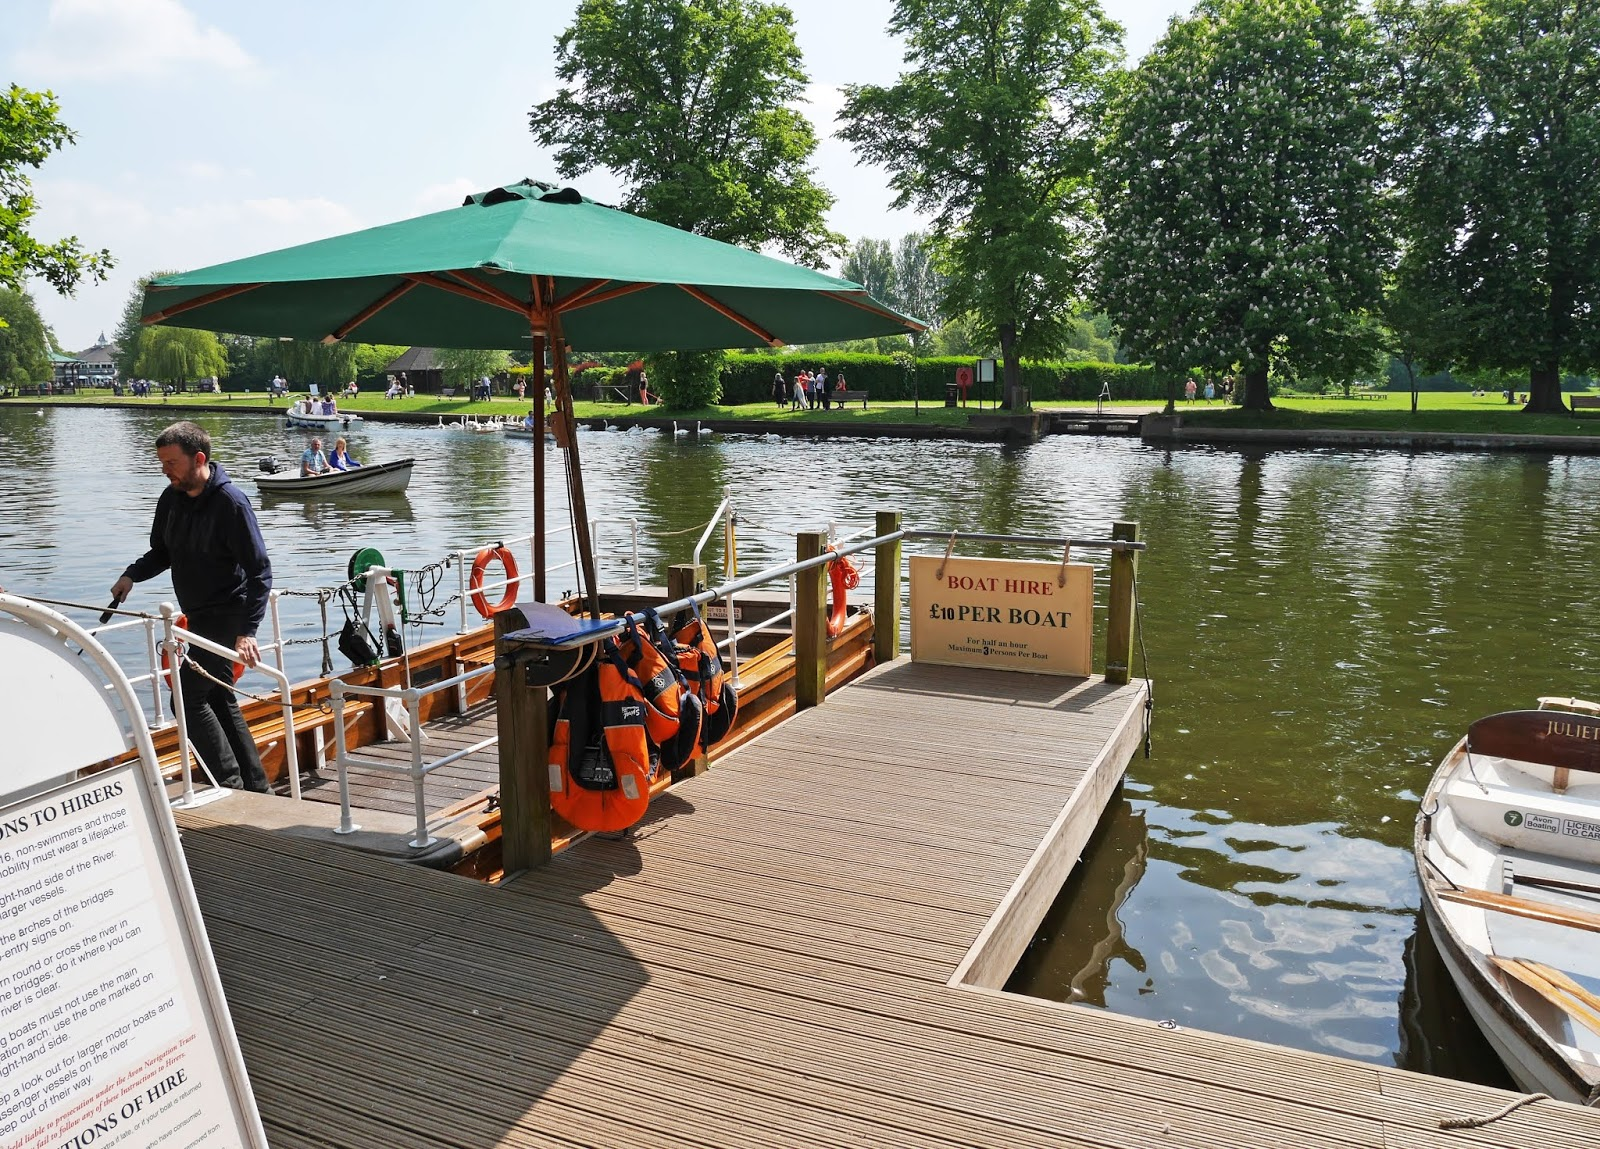 Jetty on the River Avon